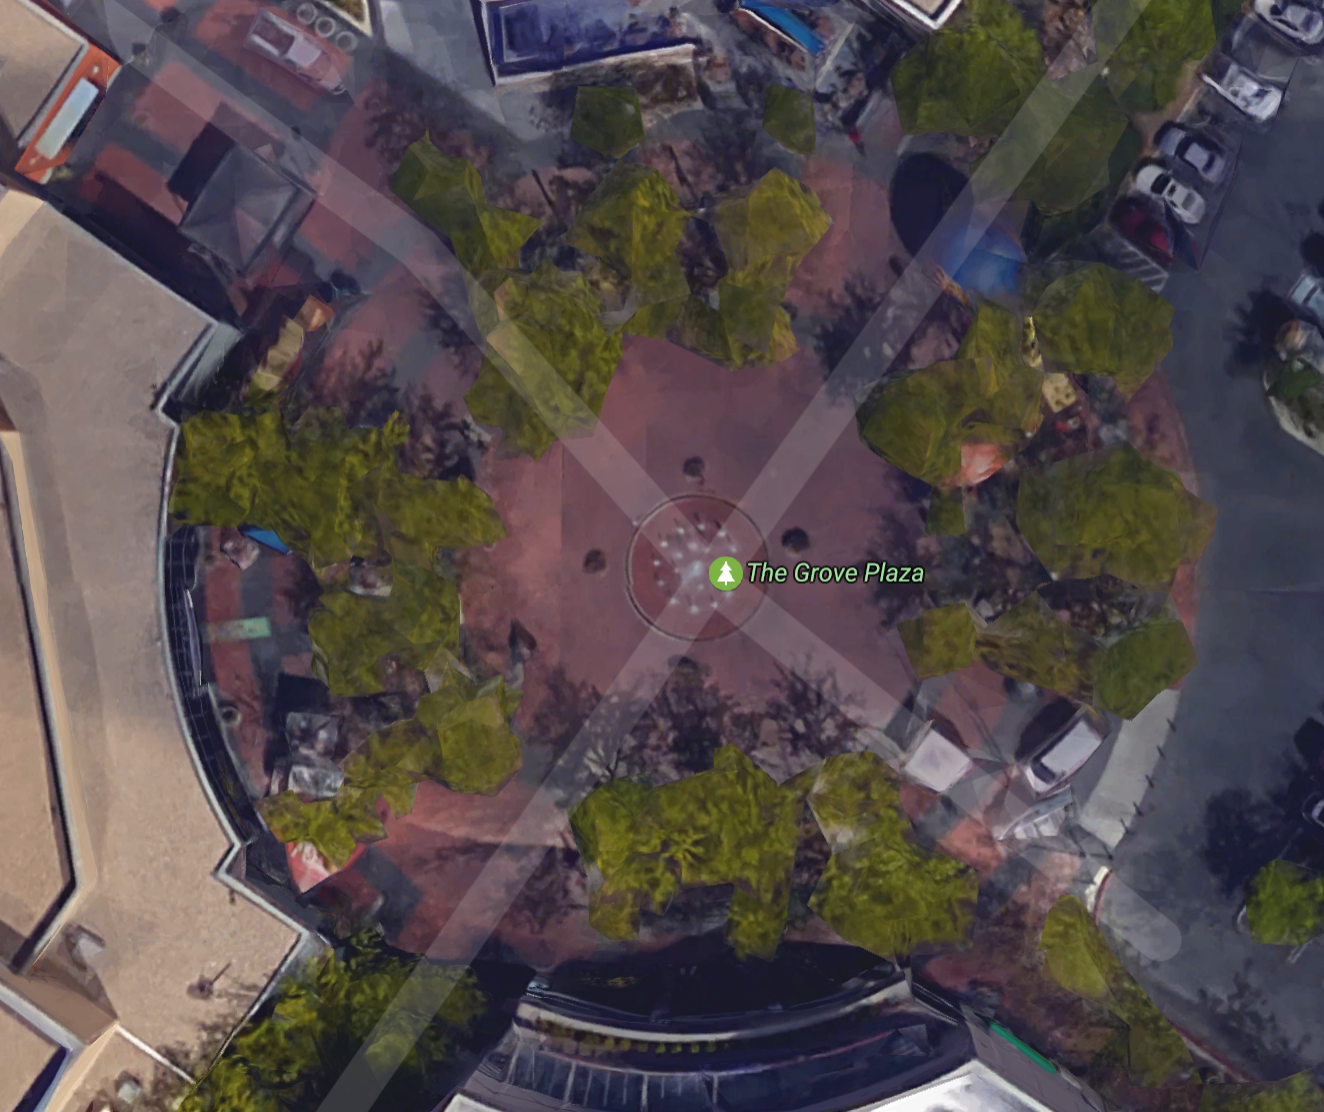 Google Earth shows the many mature trees that were removed for a Grove Plaza revamp